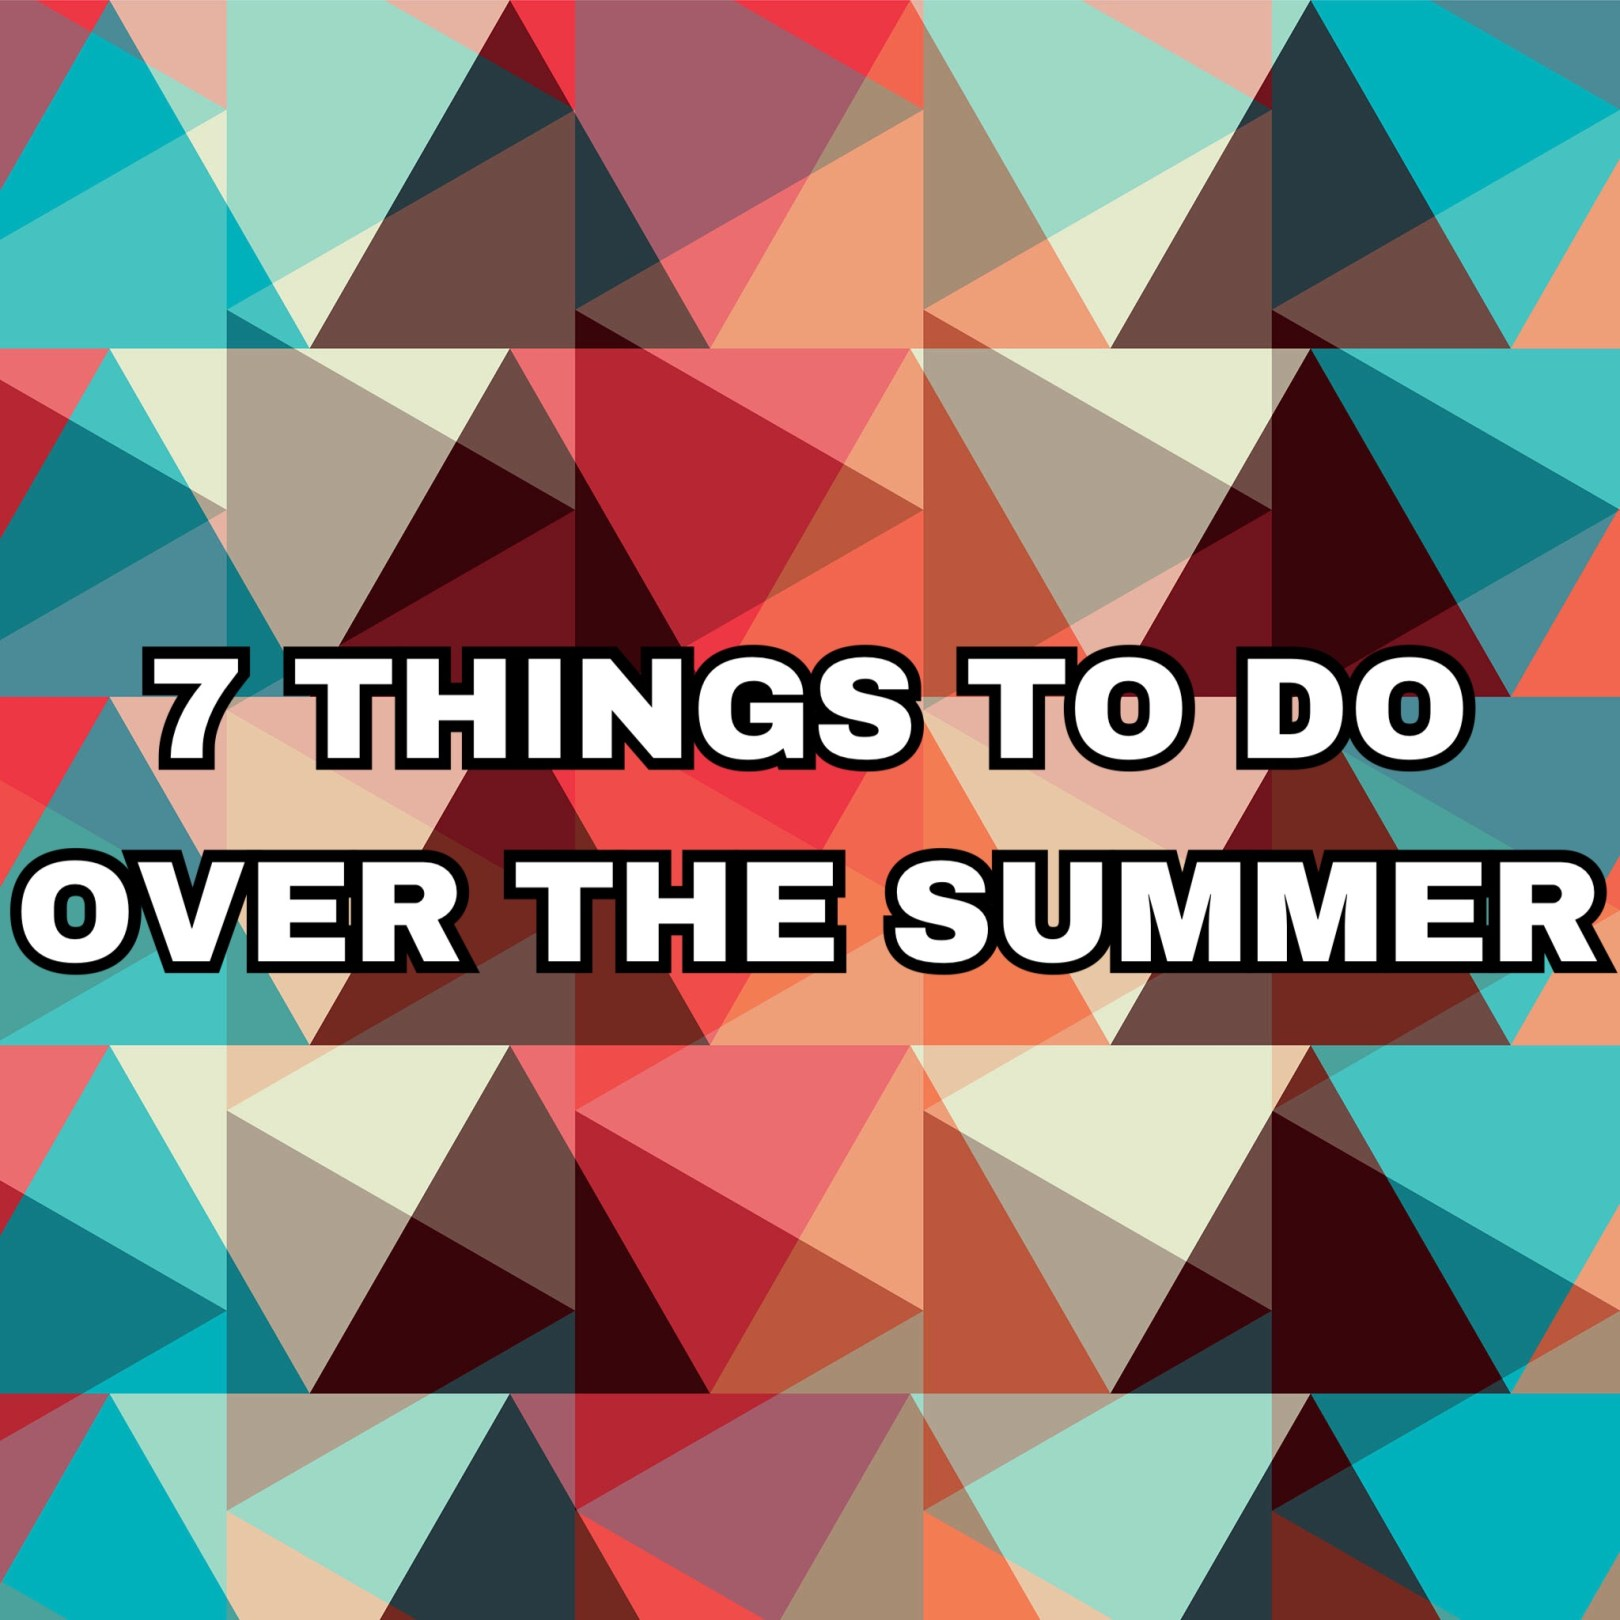 graphic 7 things to do over the summer